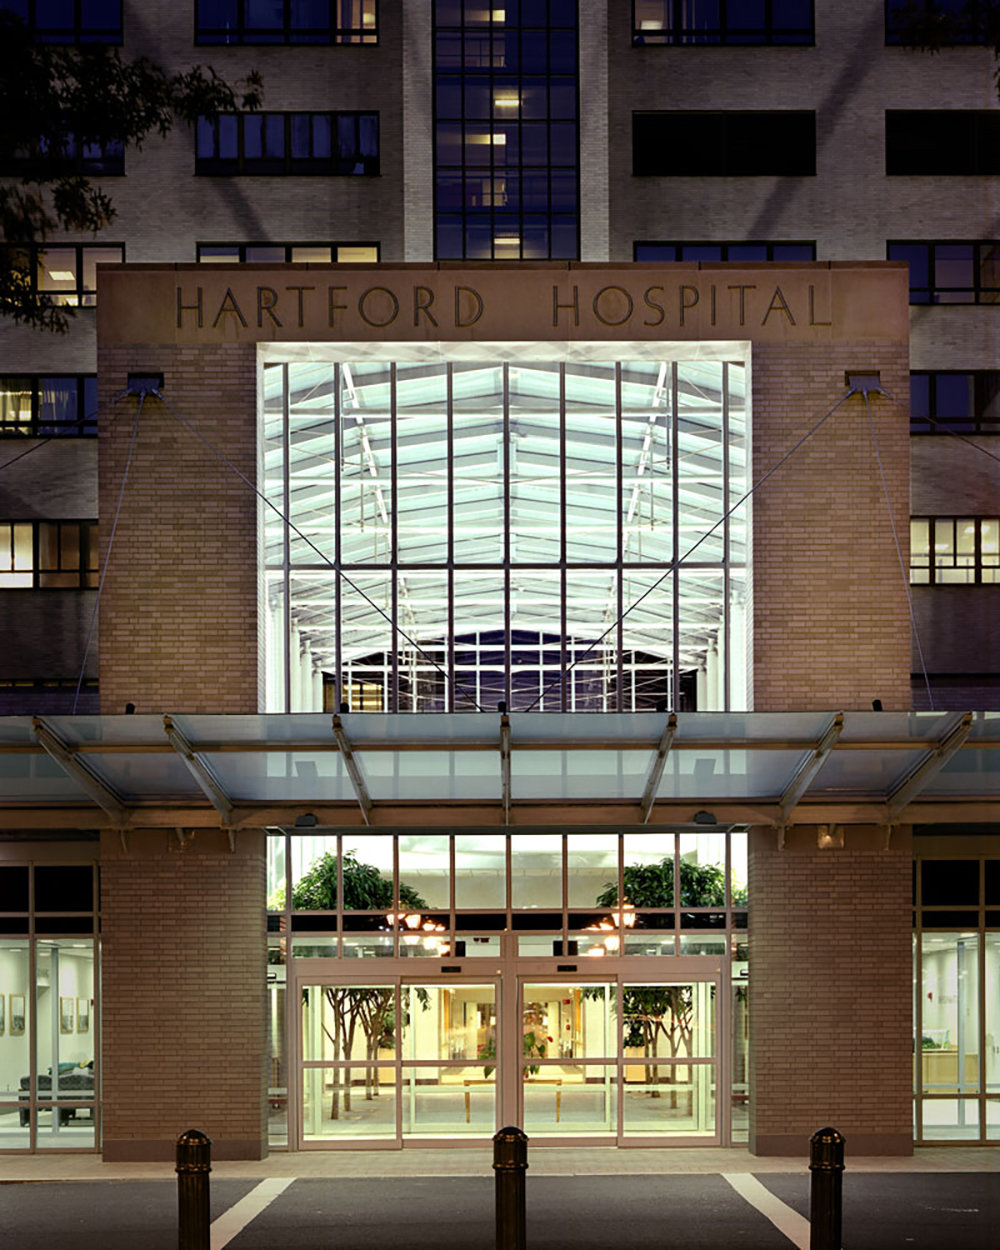 1 tskp hartford hospital lobby expansion rennovation exterior night shot main entrance 1400 0x0x1000x1250 q85